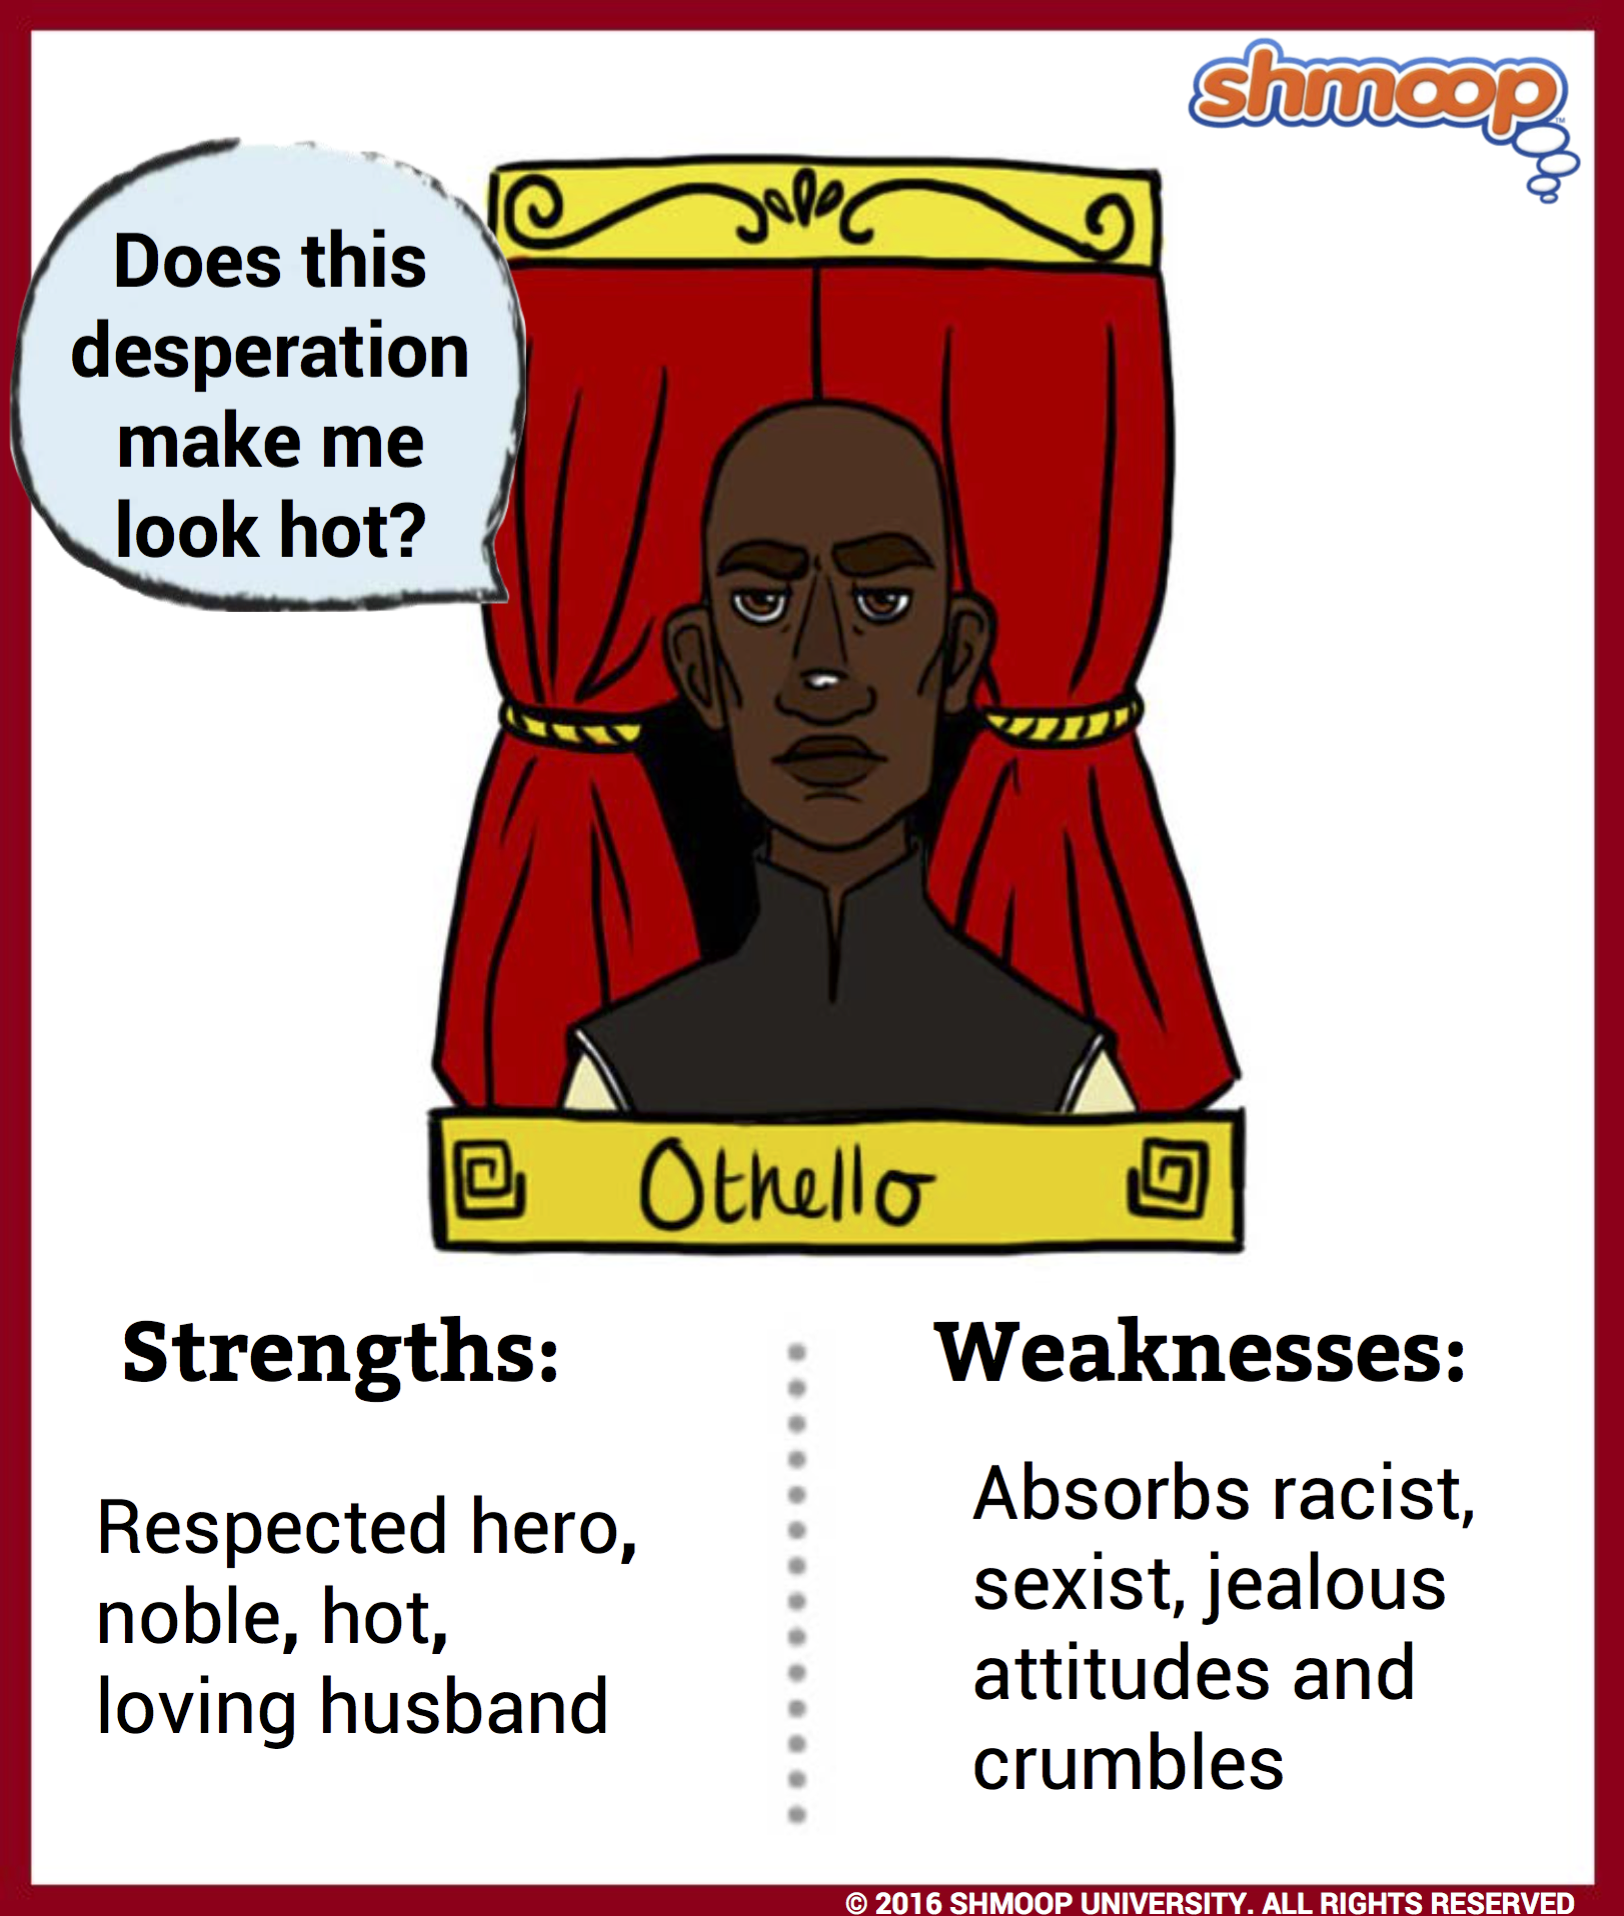 an analysis of tragedy in othello by william shakespeare When we think about shakespearean tragedy, the plays we usually have in mind are titus andronicus, romeo and juliet, julius caesar, hamlet, othello, king lear, macbeth, antony and cleopatra and coriolanus.